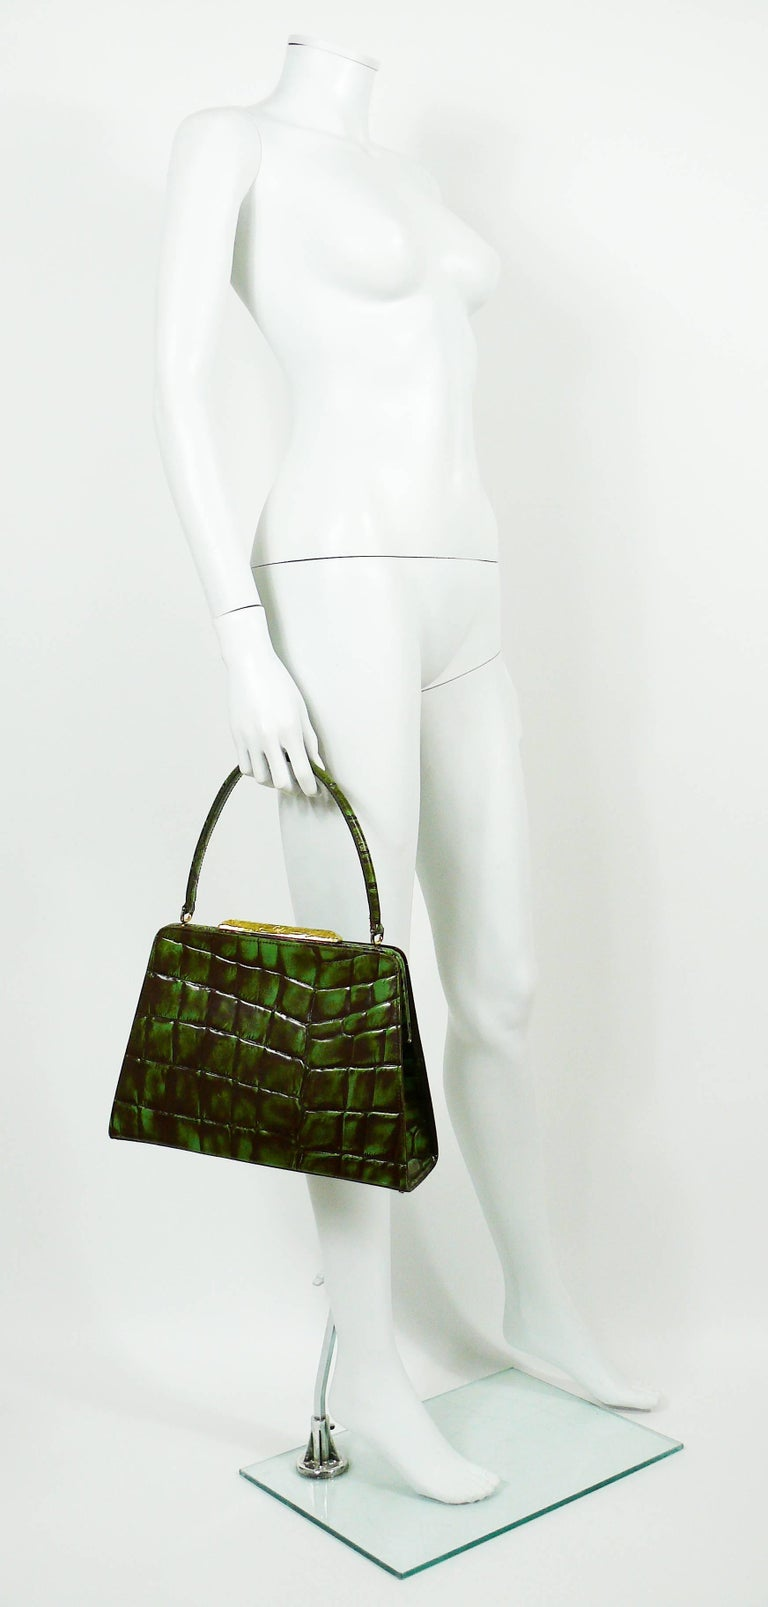 Christian Lacroix Vintage Croc Embossed Handbag In Good Condition For Sale In French Riviera, Cote d'Azur